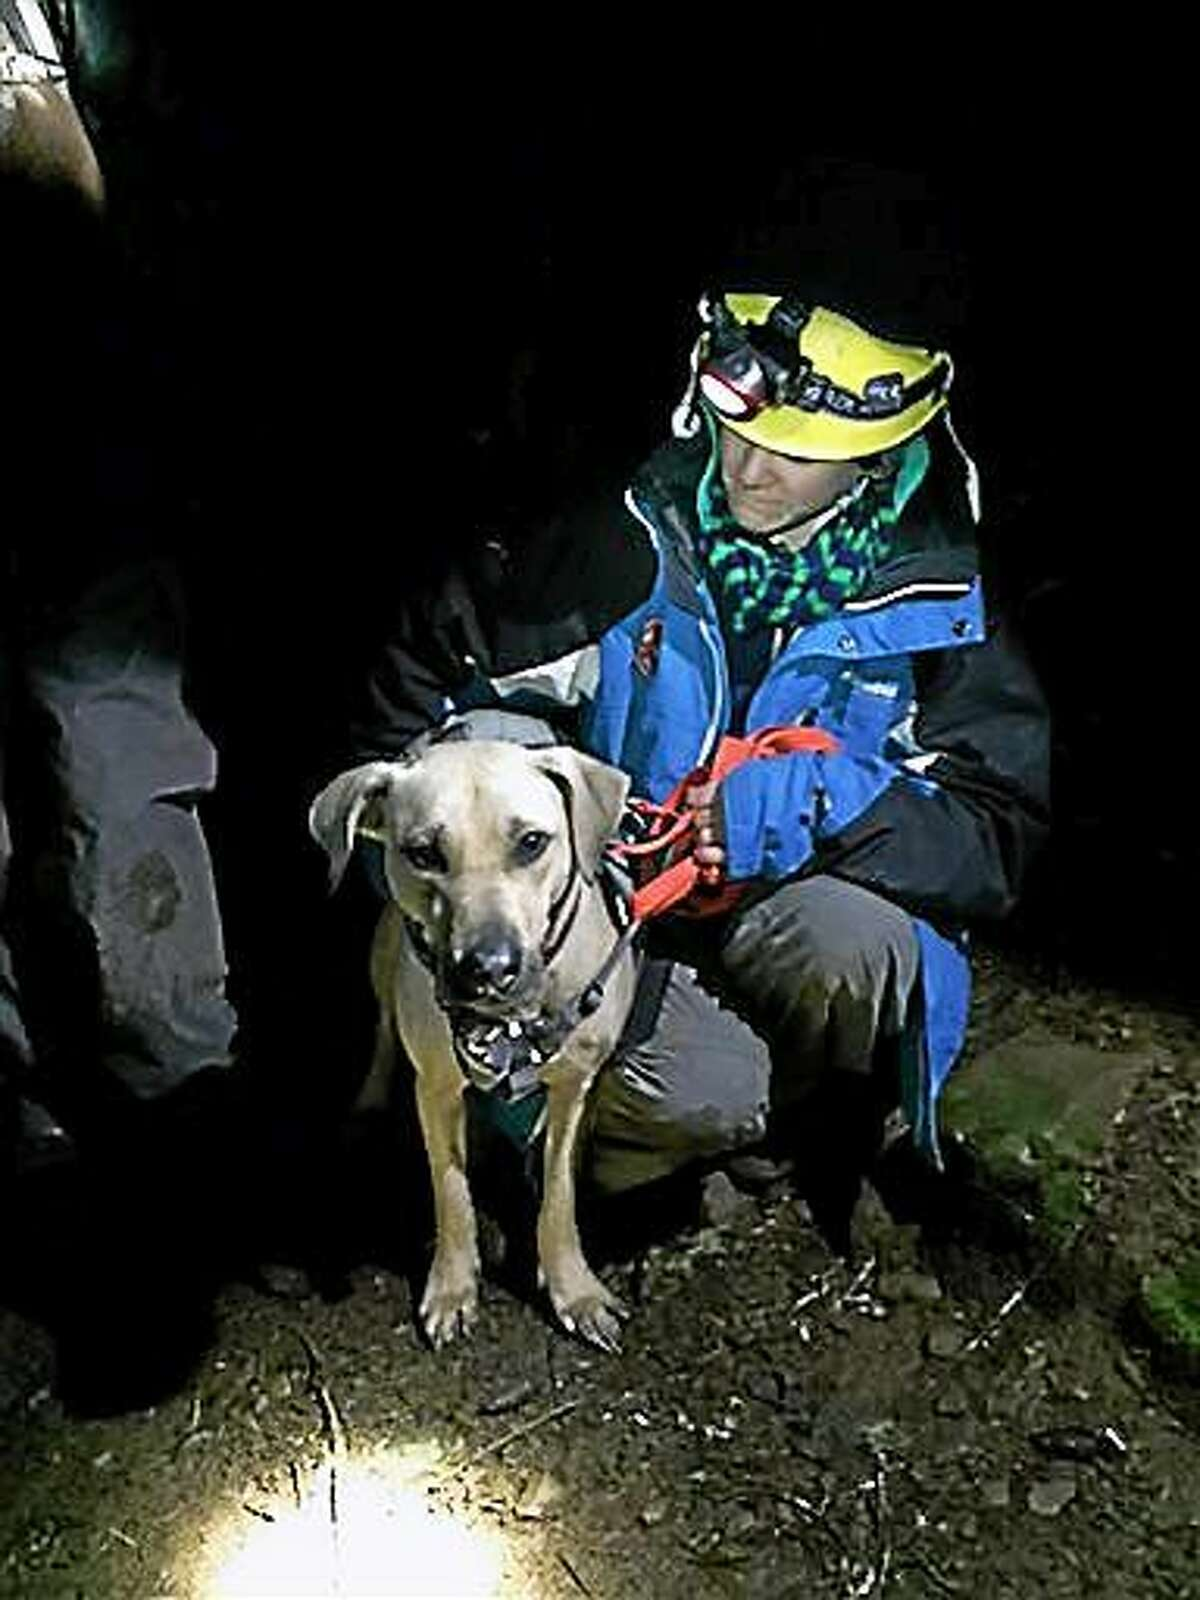 This Dec. 25 photo provided by Emily Amsler via the Oregon Humane Society shows Dr. Amy Amsler, Oregon Humane Society volunteer during a rescue of Sandy a yellow Labrador who got spooked on a Christmas Day hike in the Columbia Gorge.